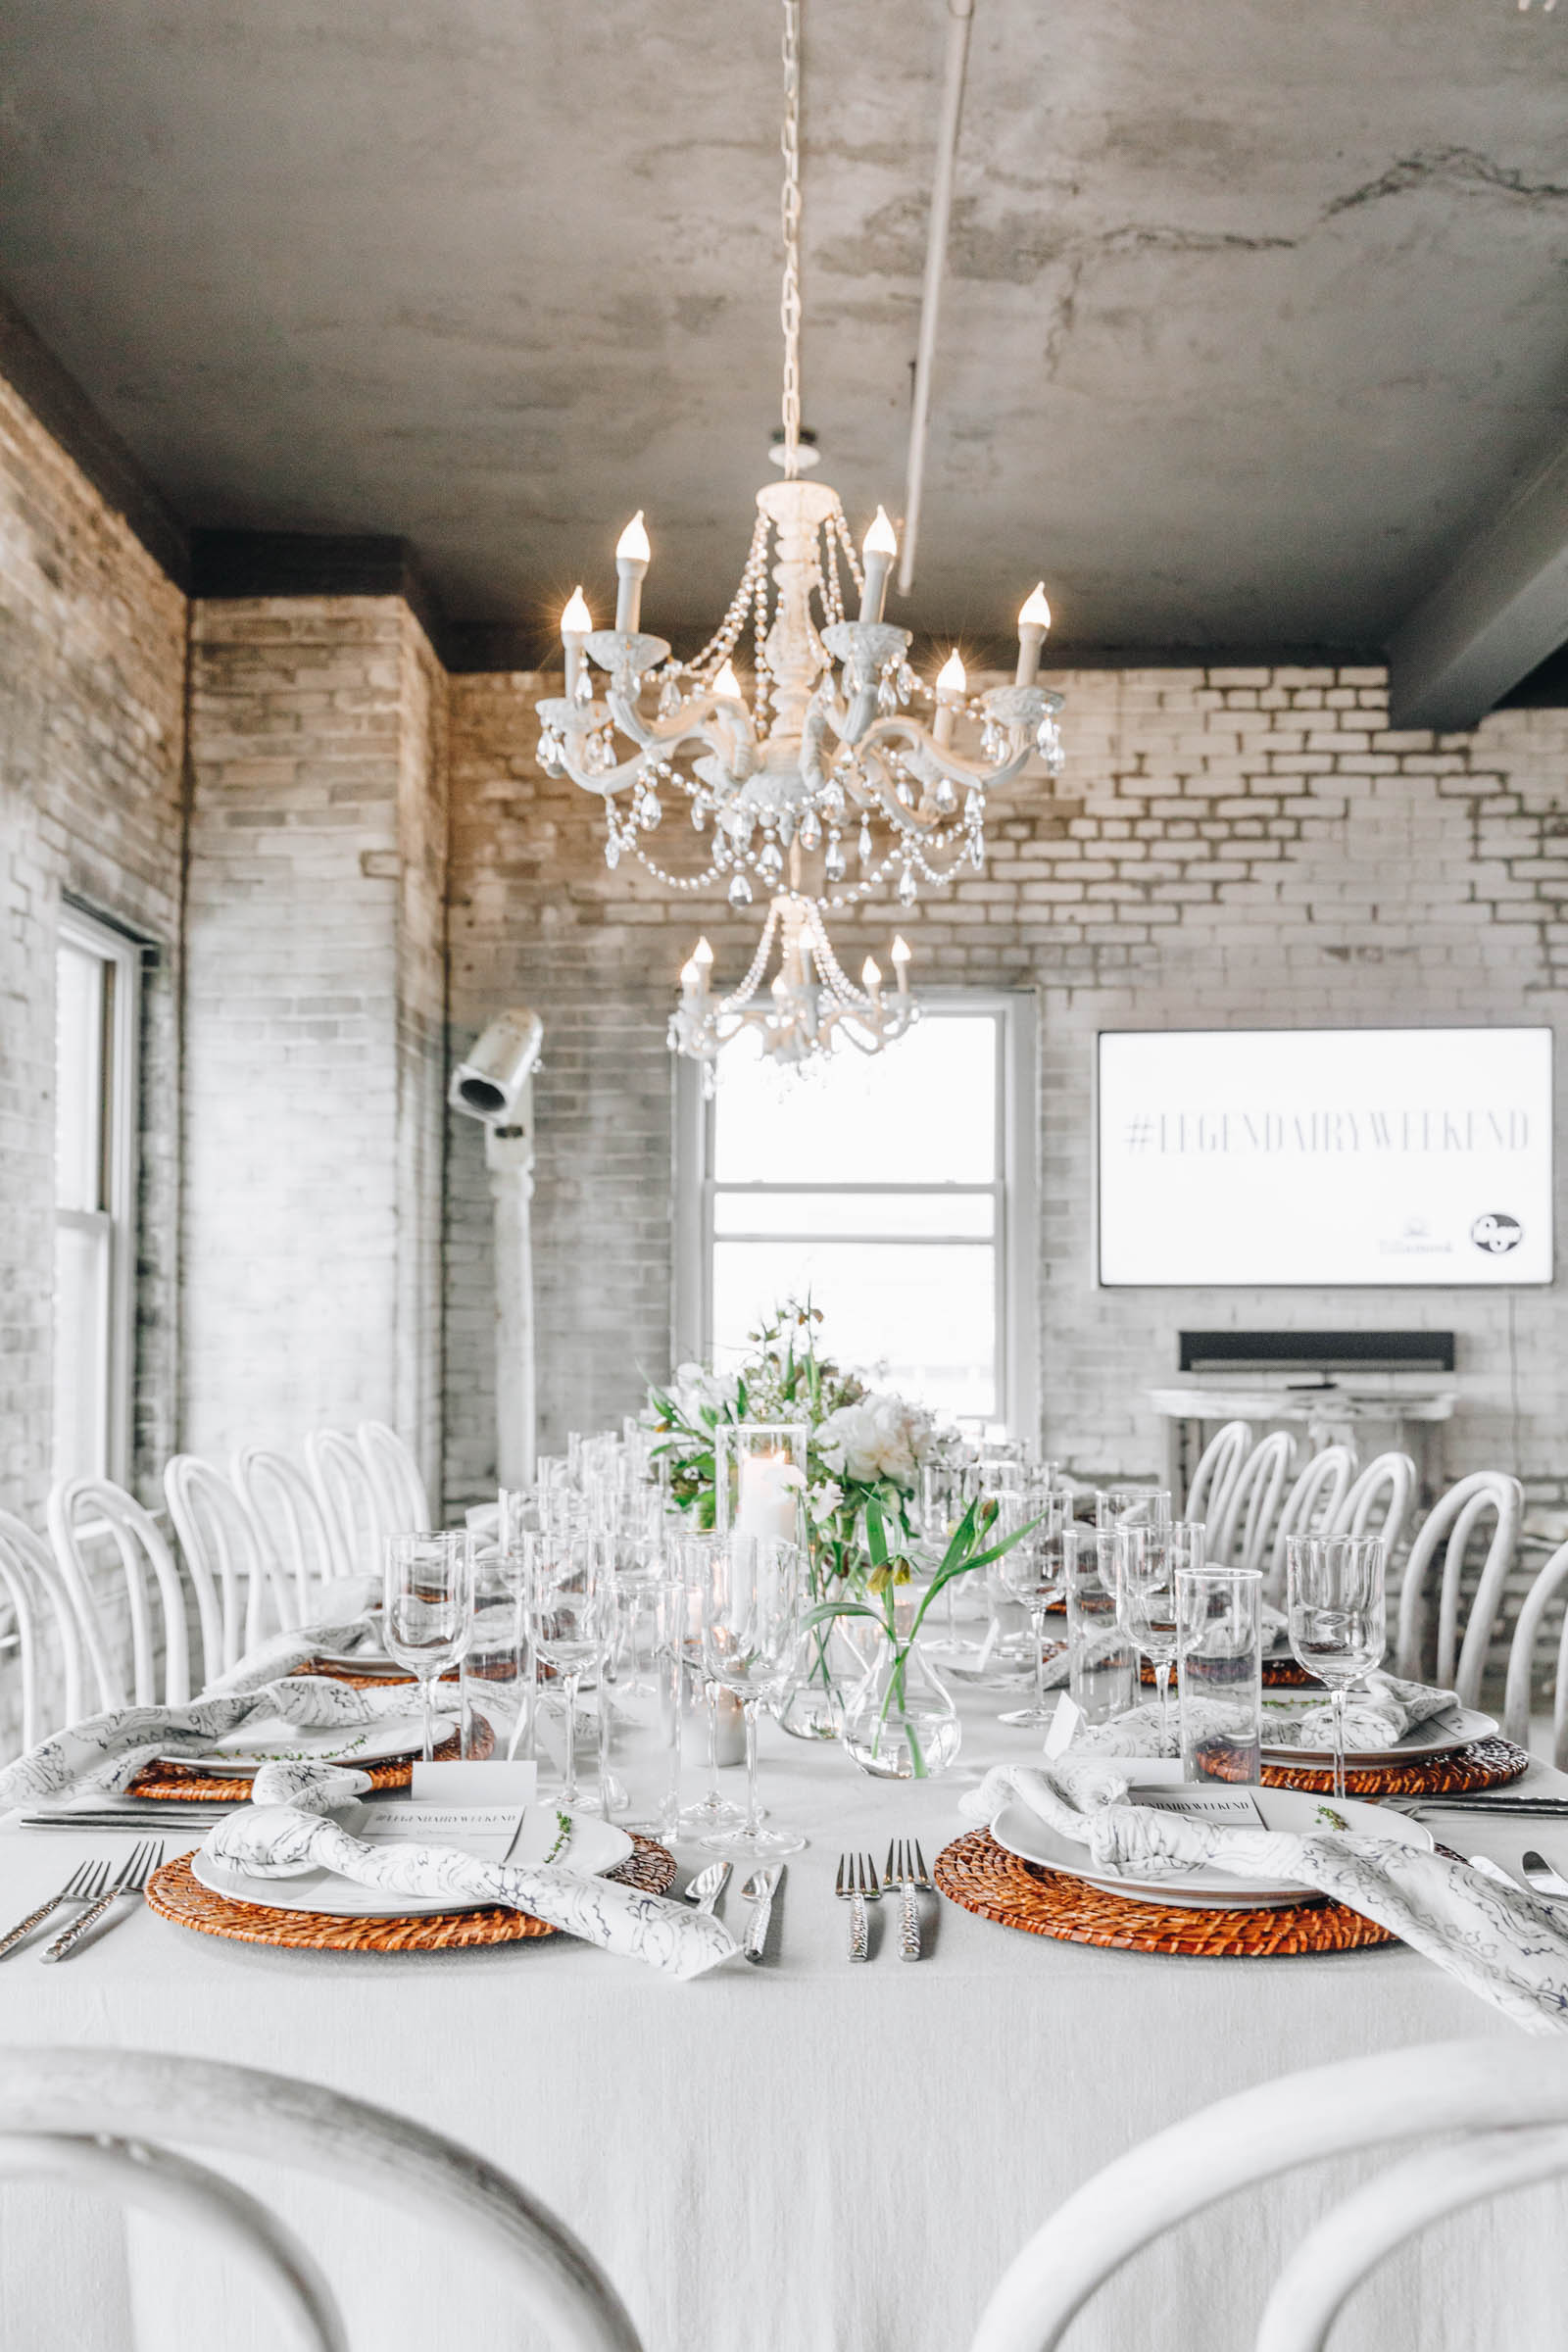 white table setting with a white hanging chandelier